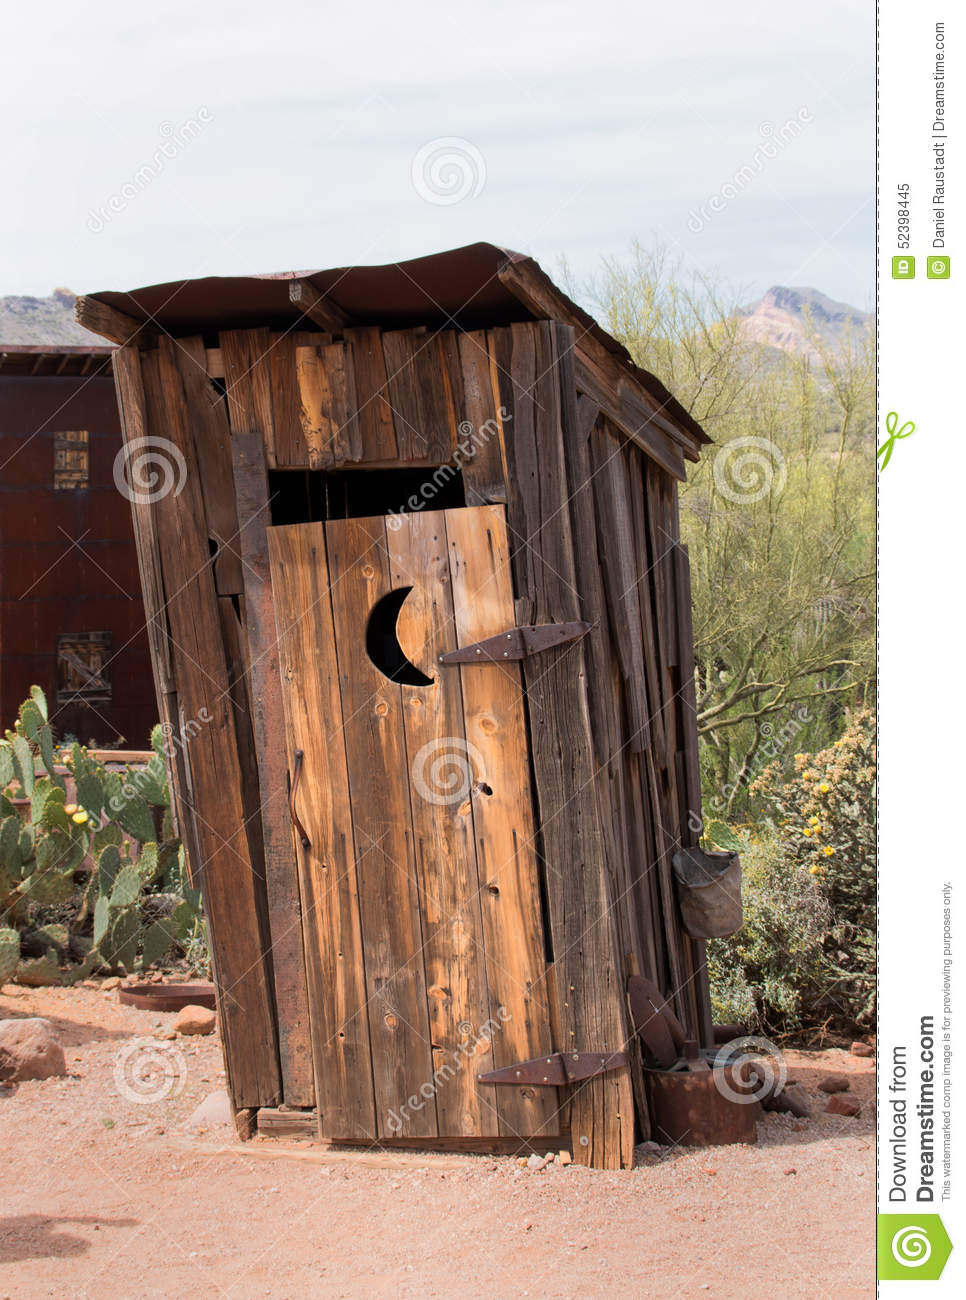 Old Wild West Outhouse Bathroom Stock Photo Image - Outhouse bathroom